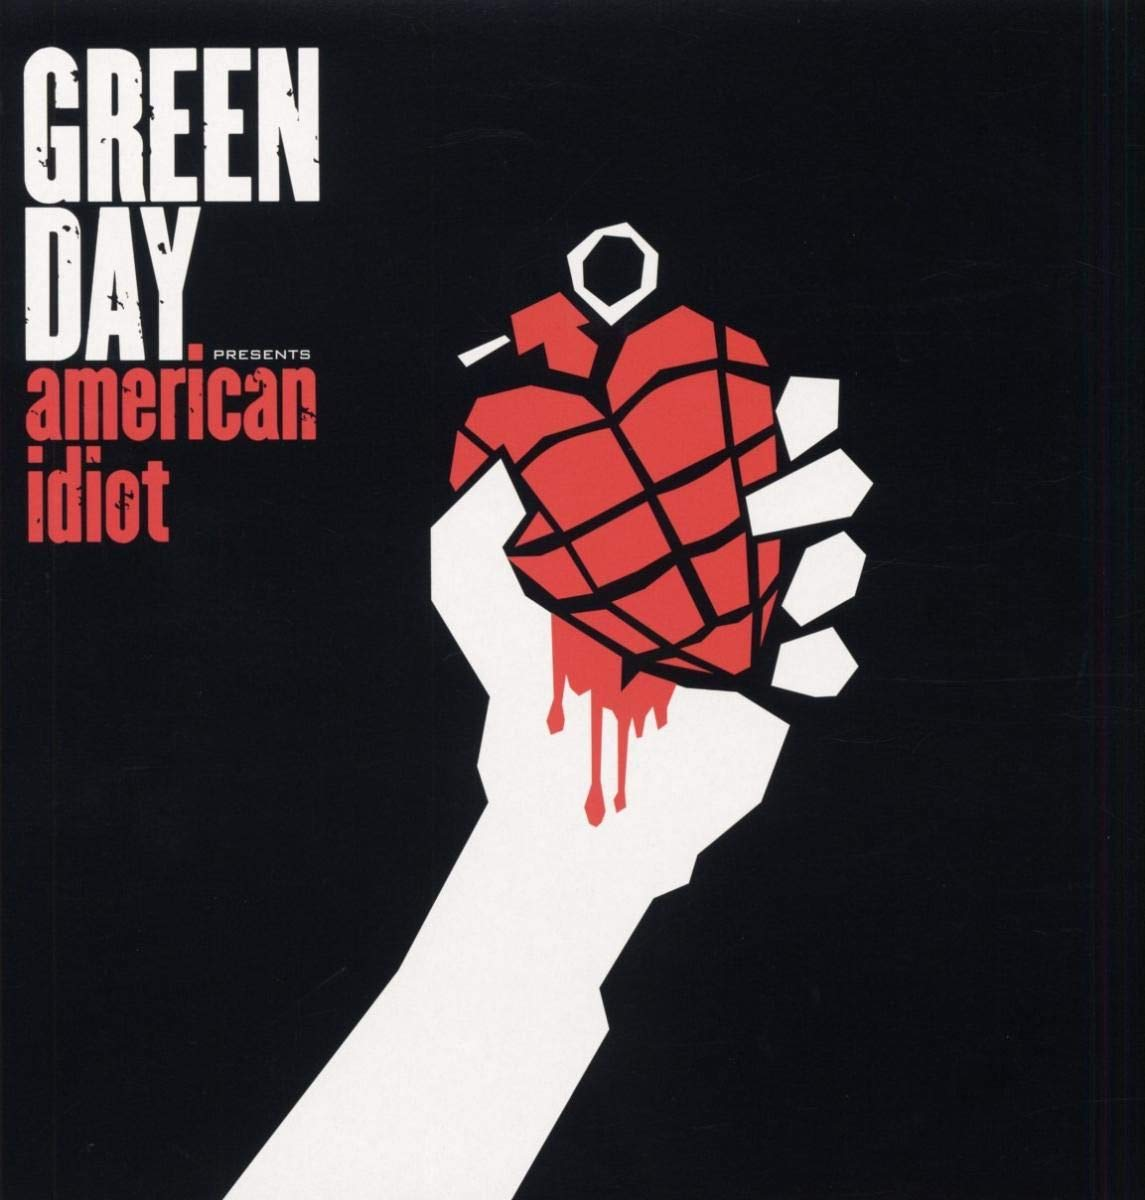 GREEN DAY - American Idiot [Vinyl] - Amazon.com Music